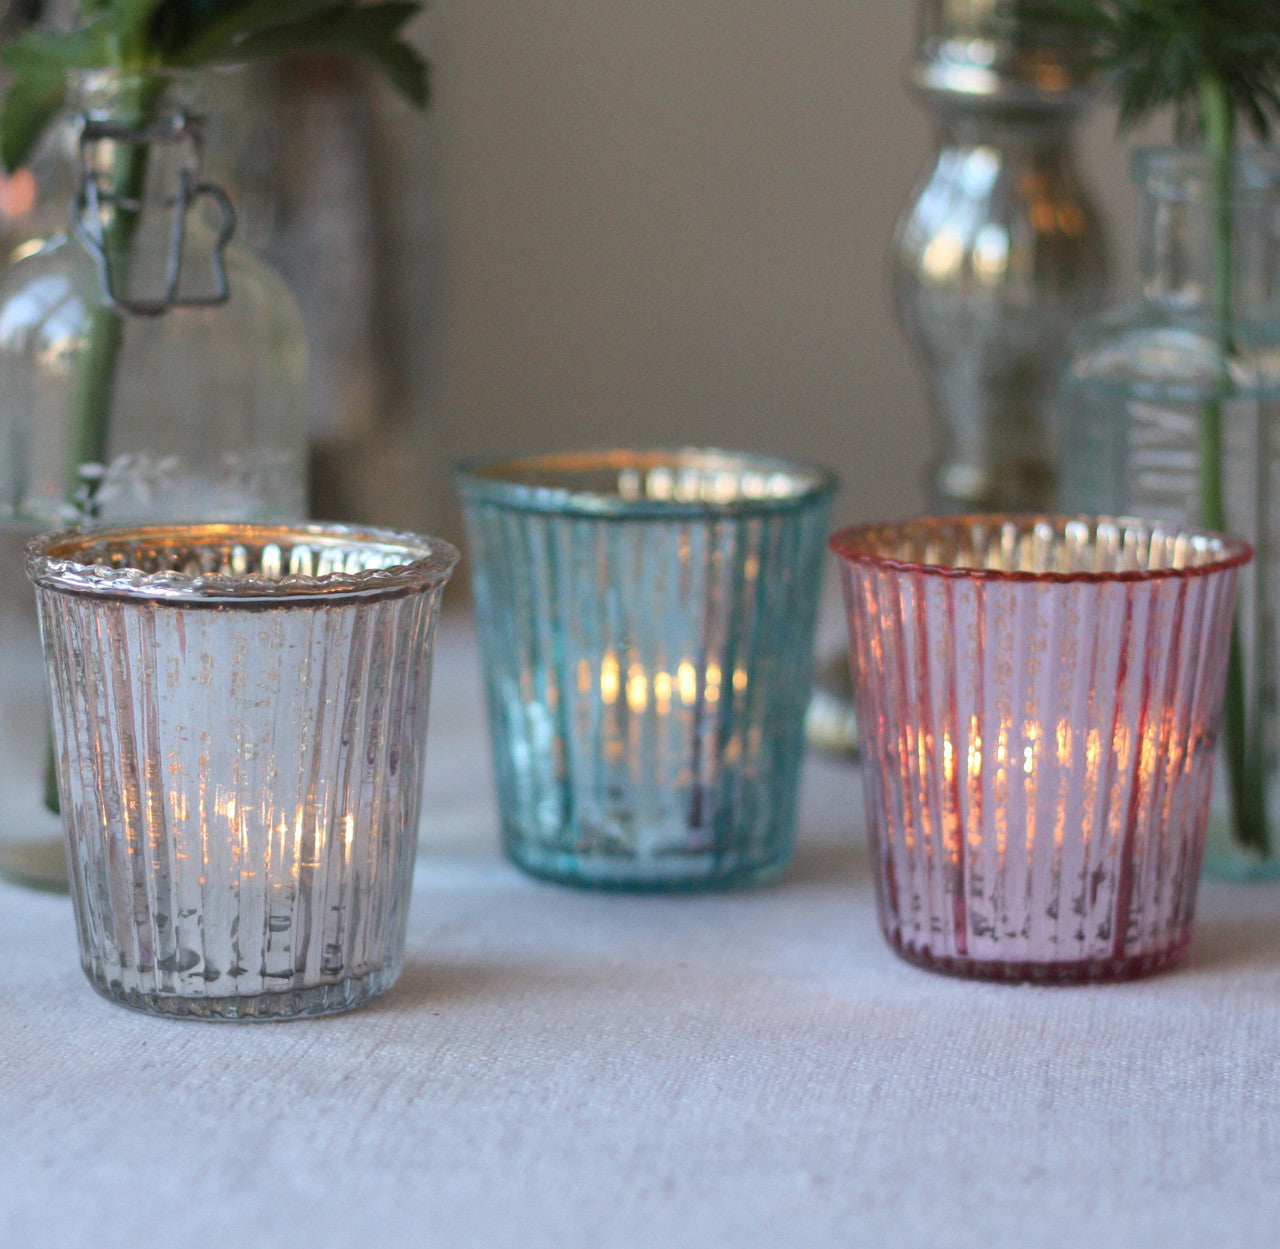 We carry a quality selection of Tealight Holders specifically designed for these tiny candles. Fill them with sand or other decorative elements and place your tea lights in the center. Choose from glass, metal, ceramic and wax holders that best suit your desired look.